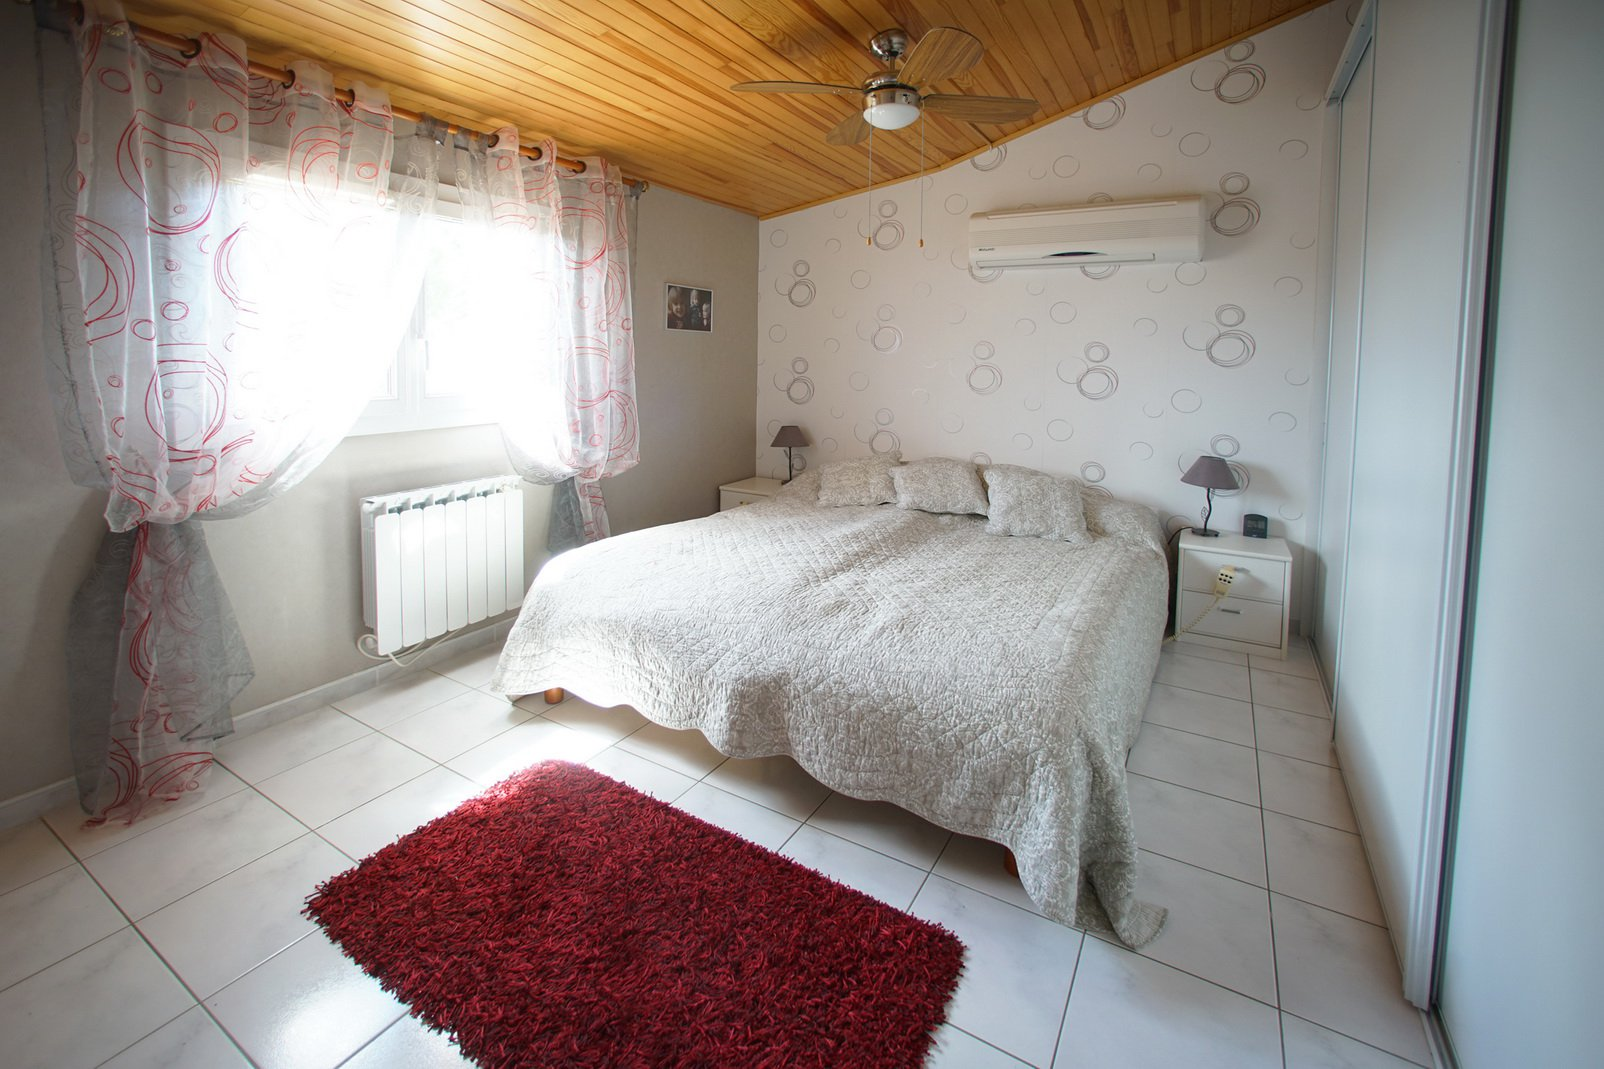 Villa with nice location and very good condition